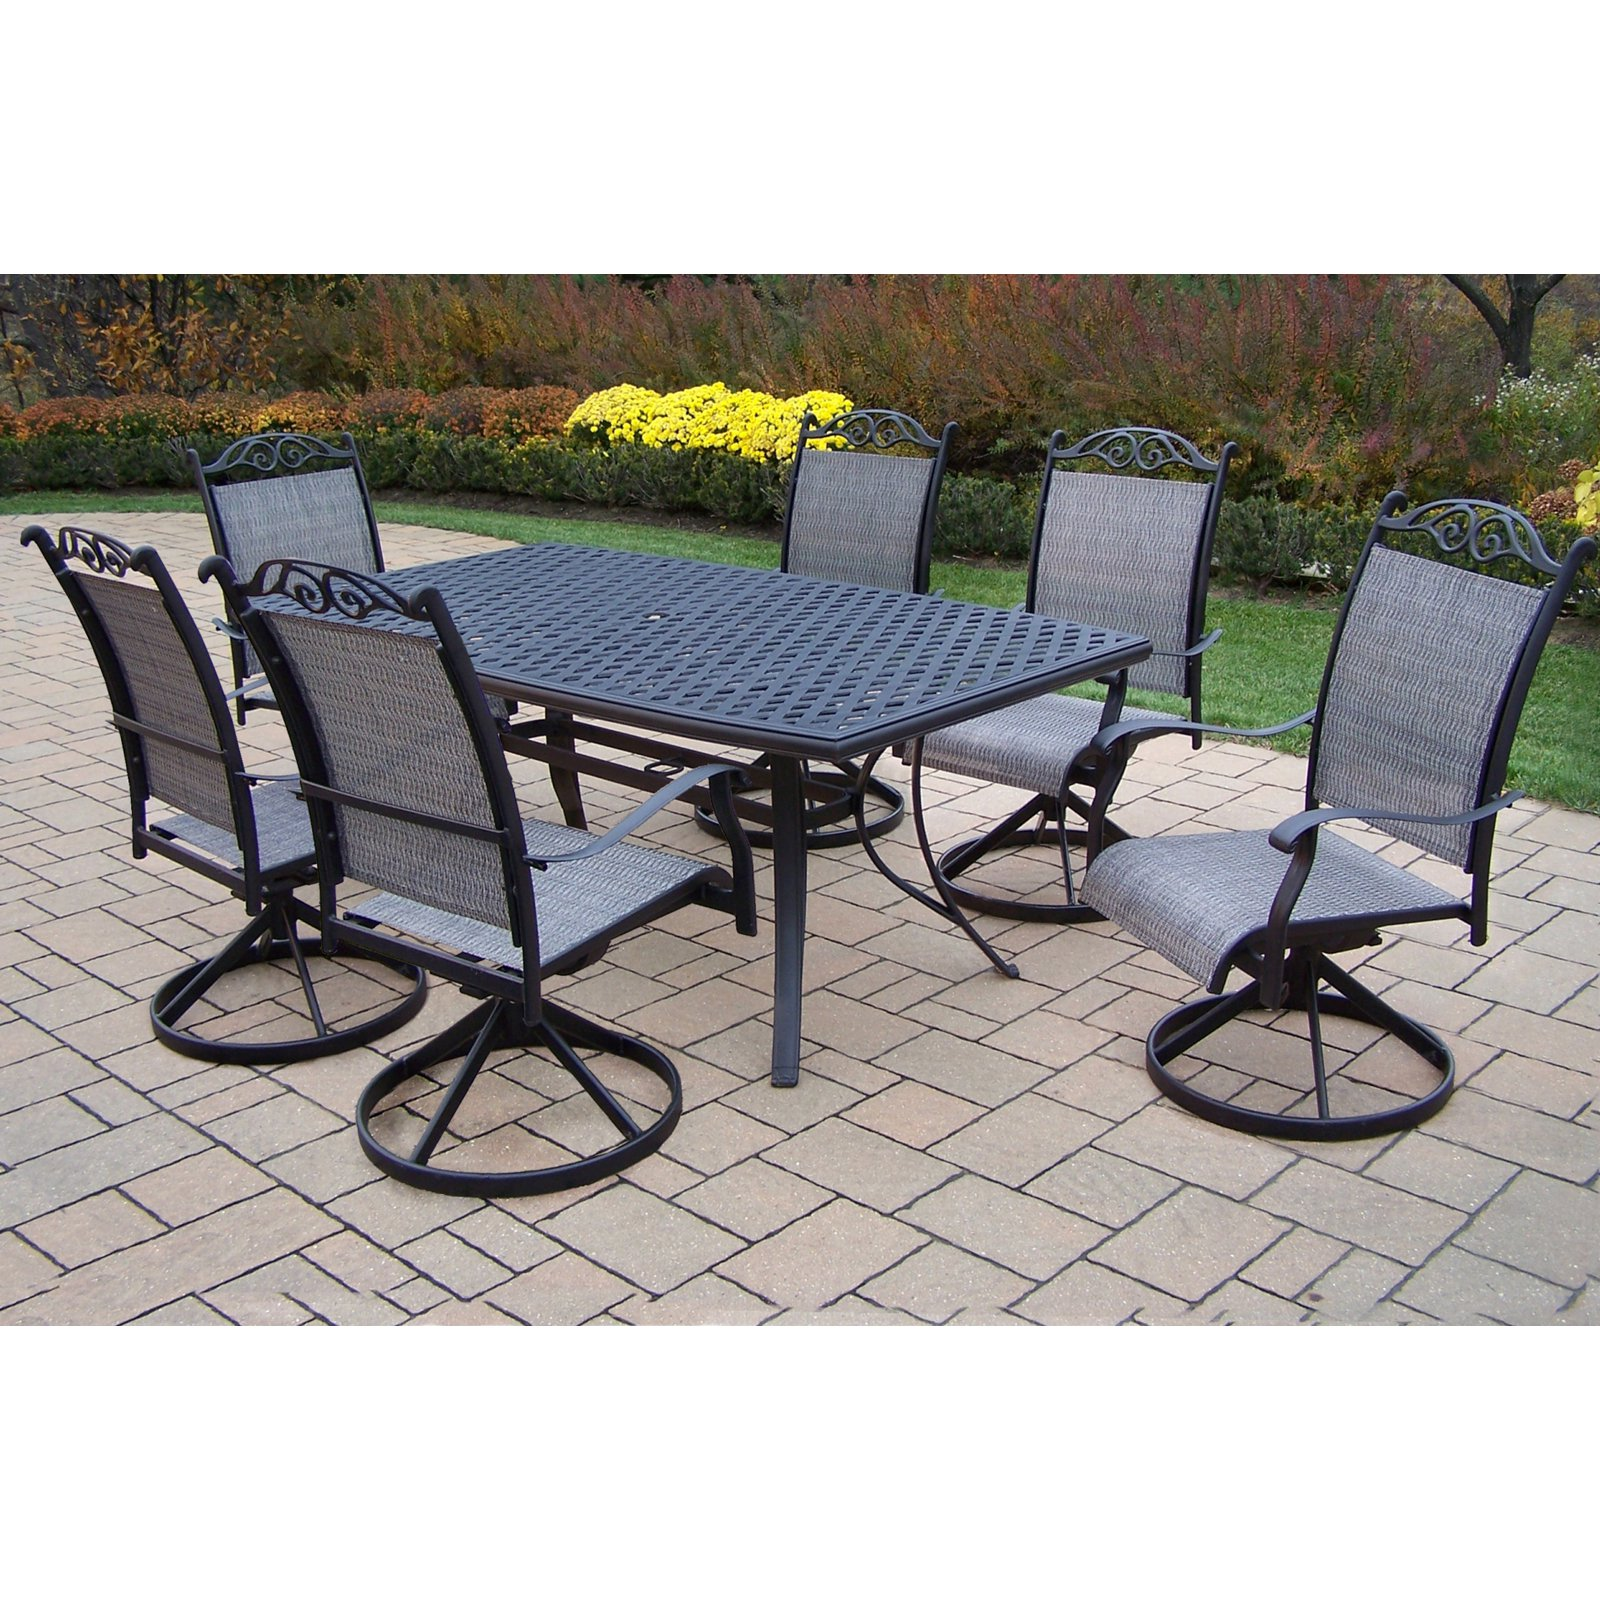 Oakland Living Cascade Patio Dining Set with Boat Shape Table - Seats 6